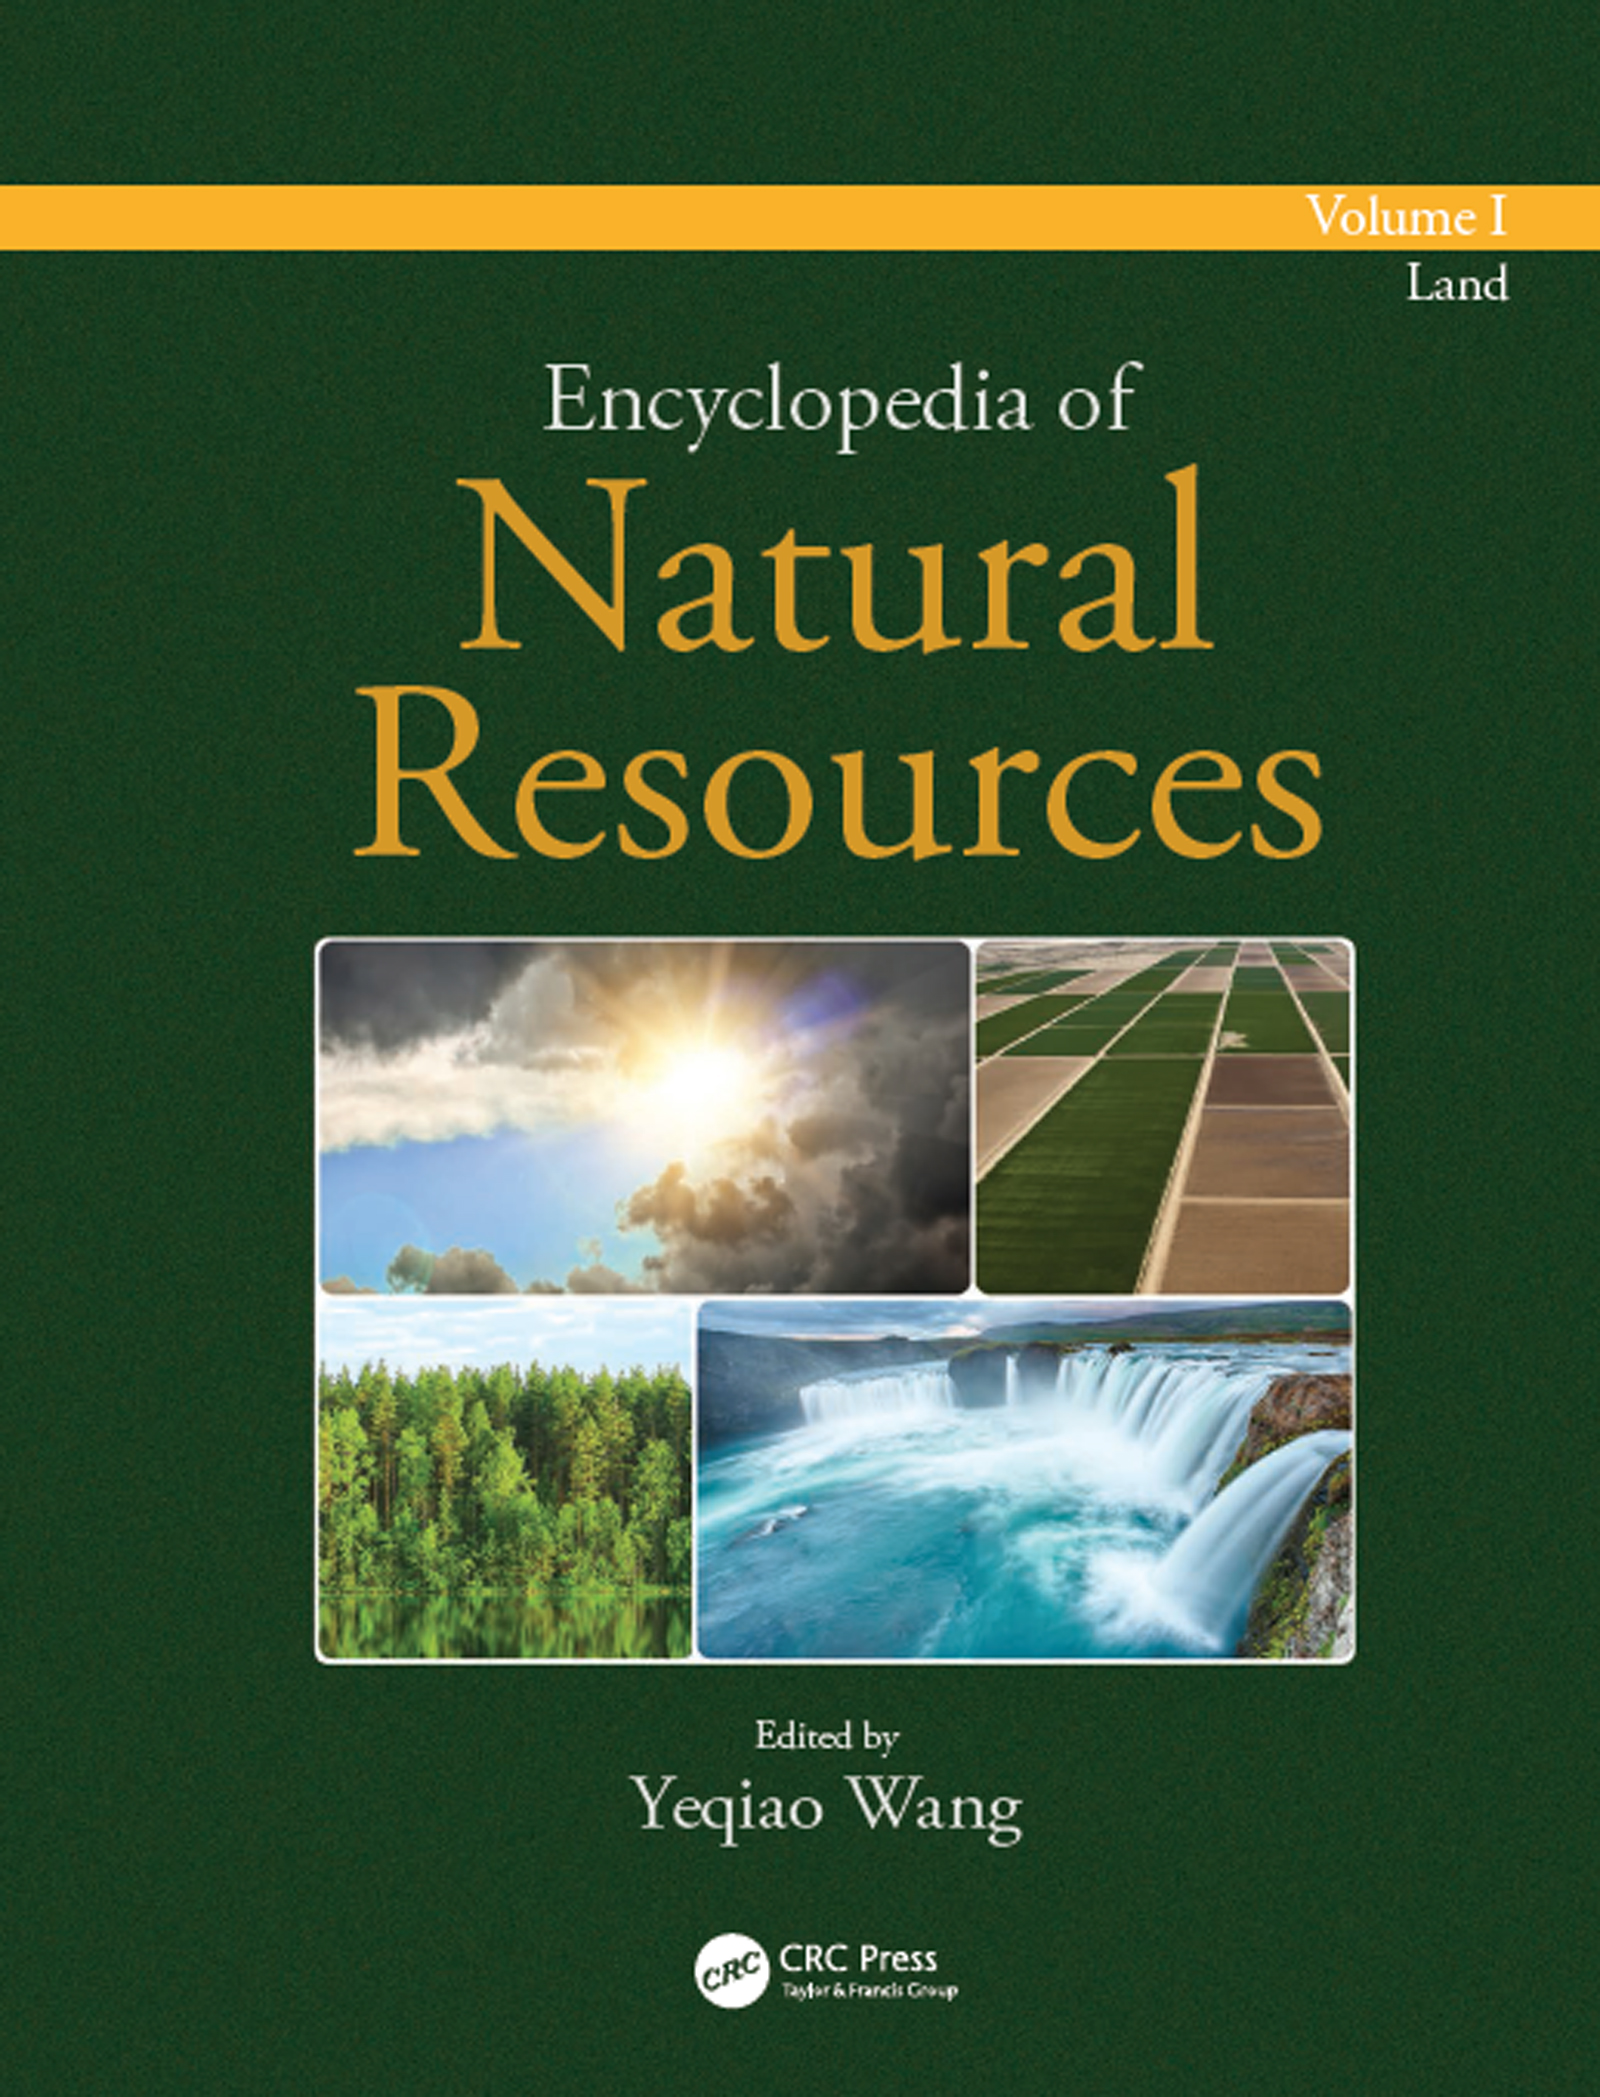 Encyclopedia of Natural Resources - Land - Volume I book cover